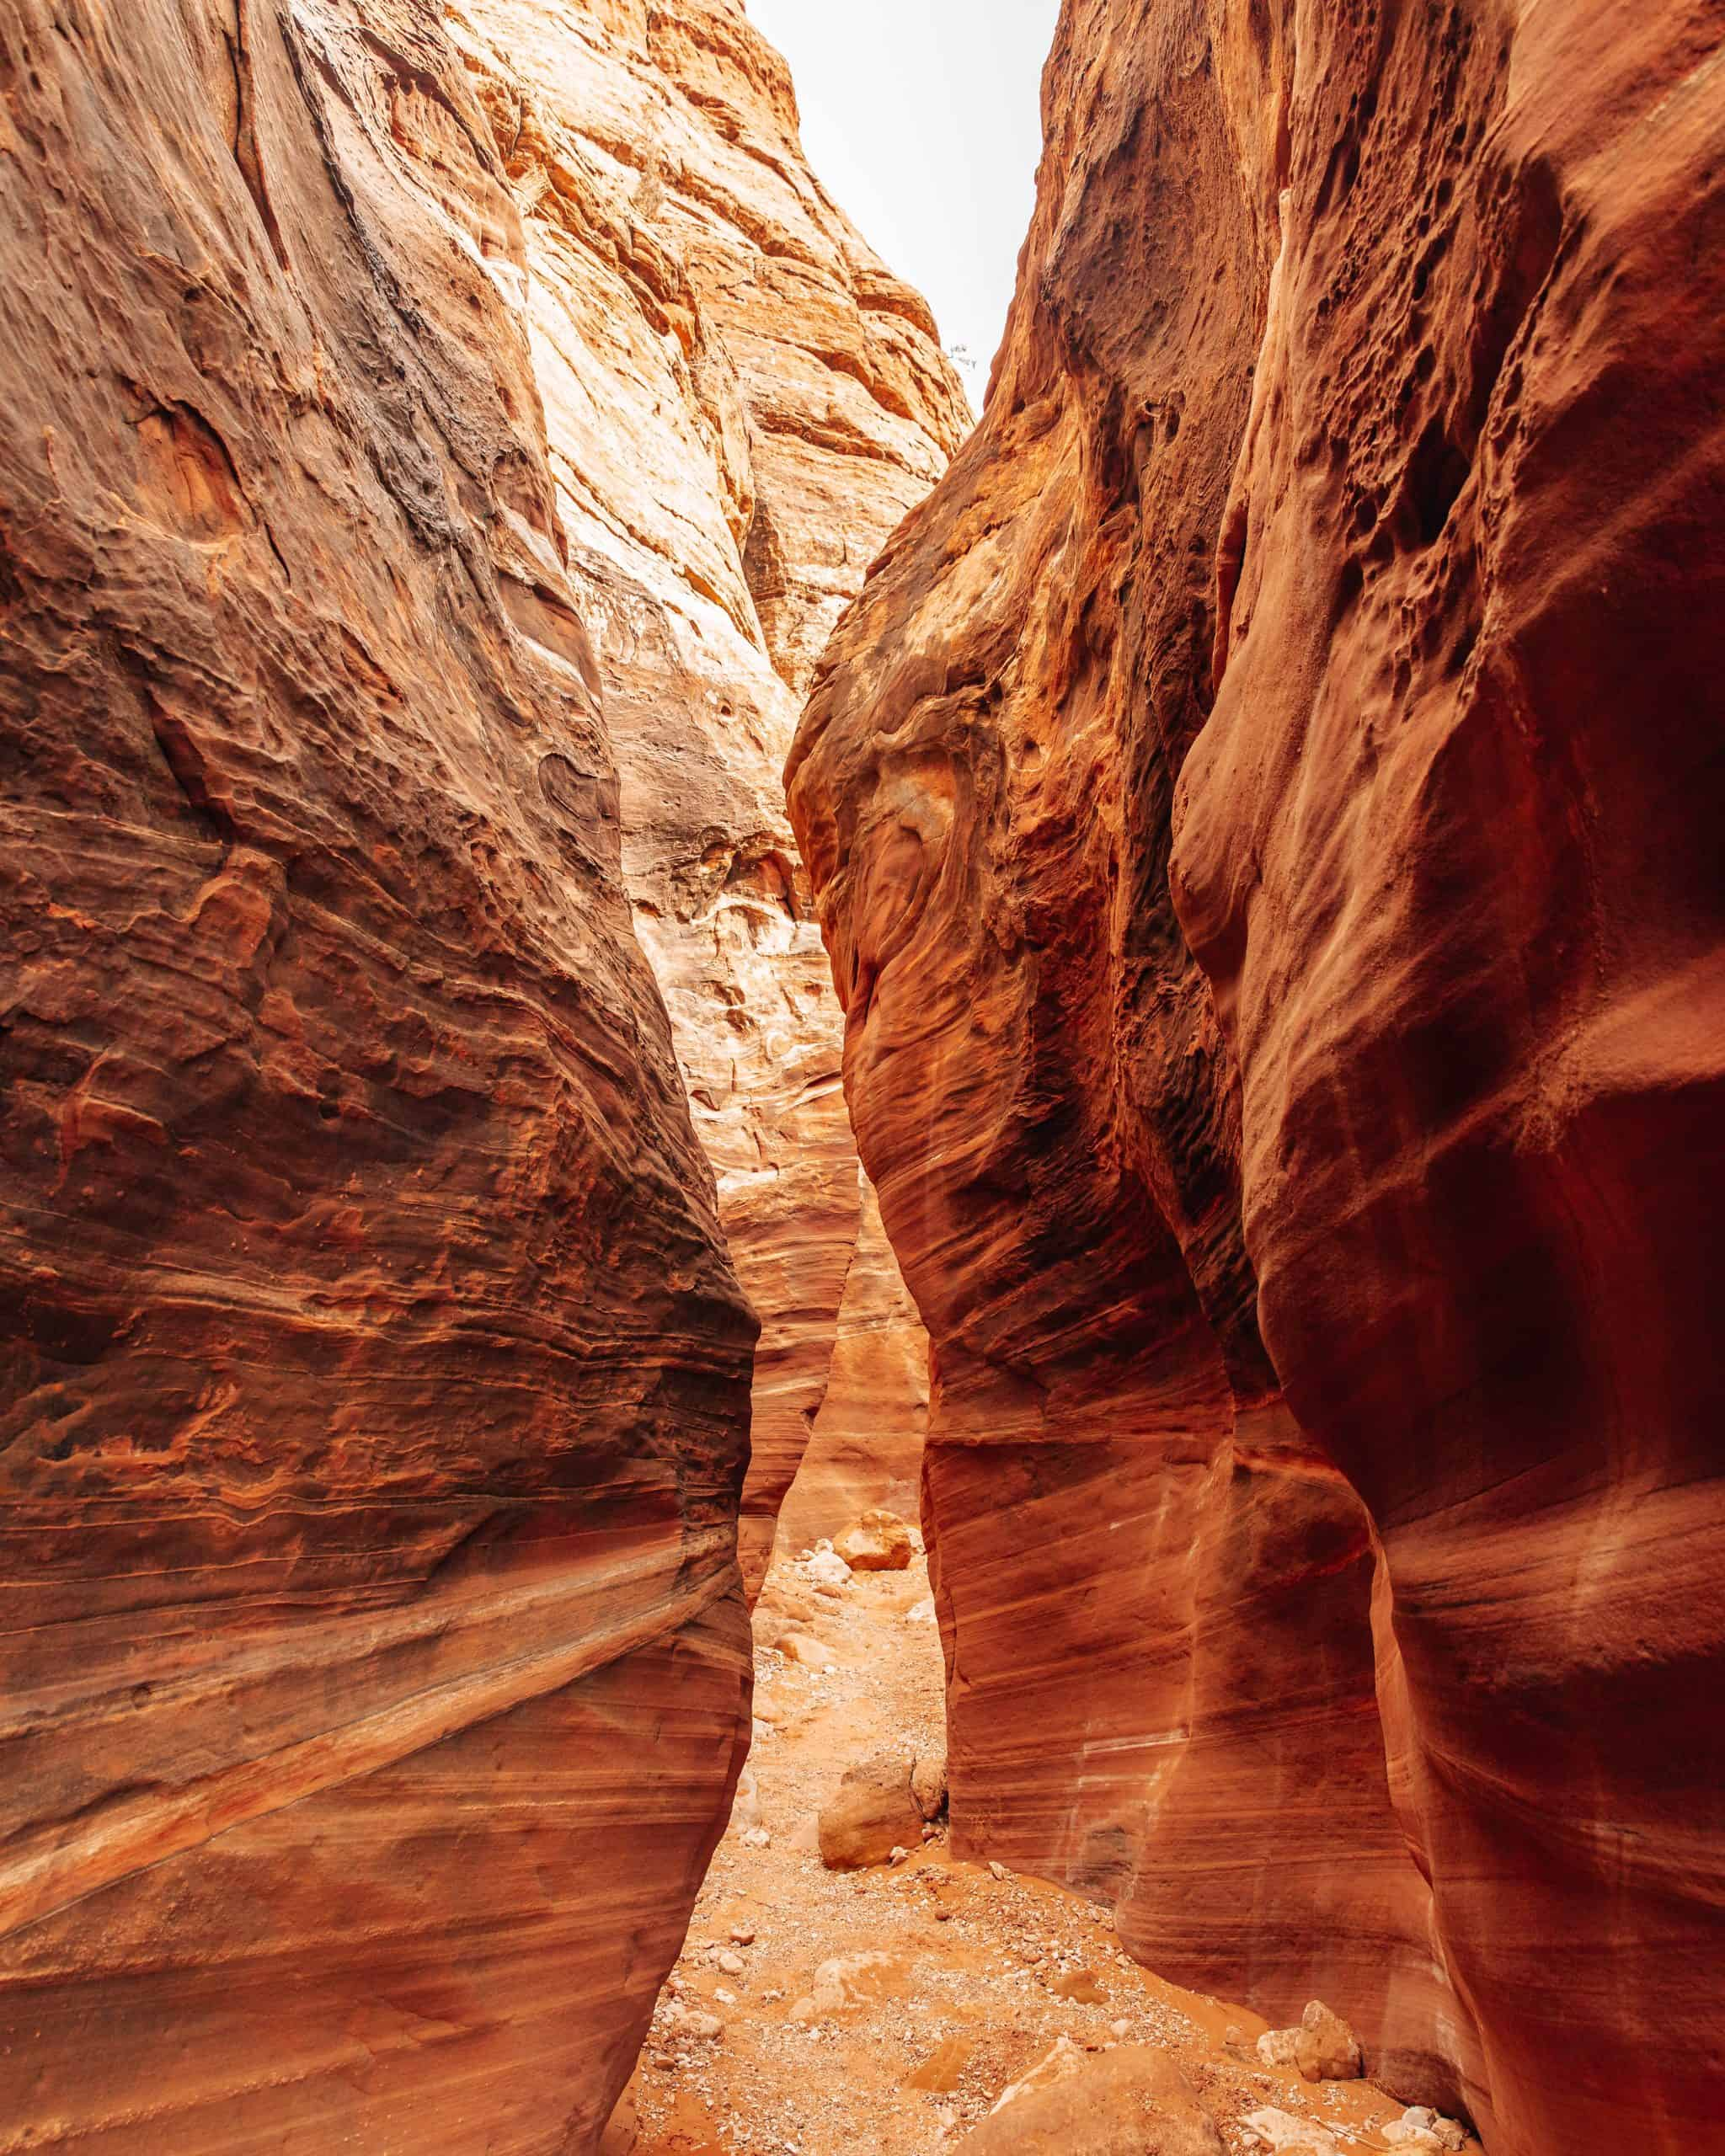 Wire Pass and Buckskin Gulch Slot Canyon - The Next Trip